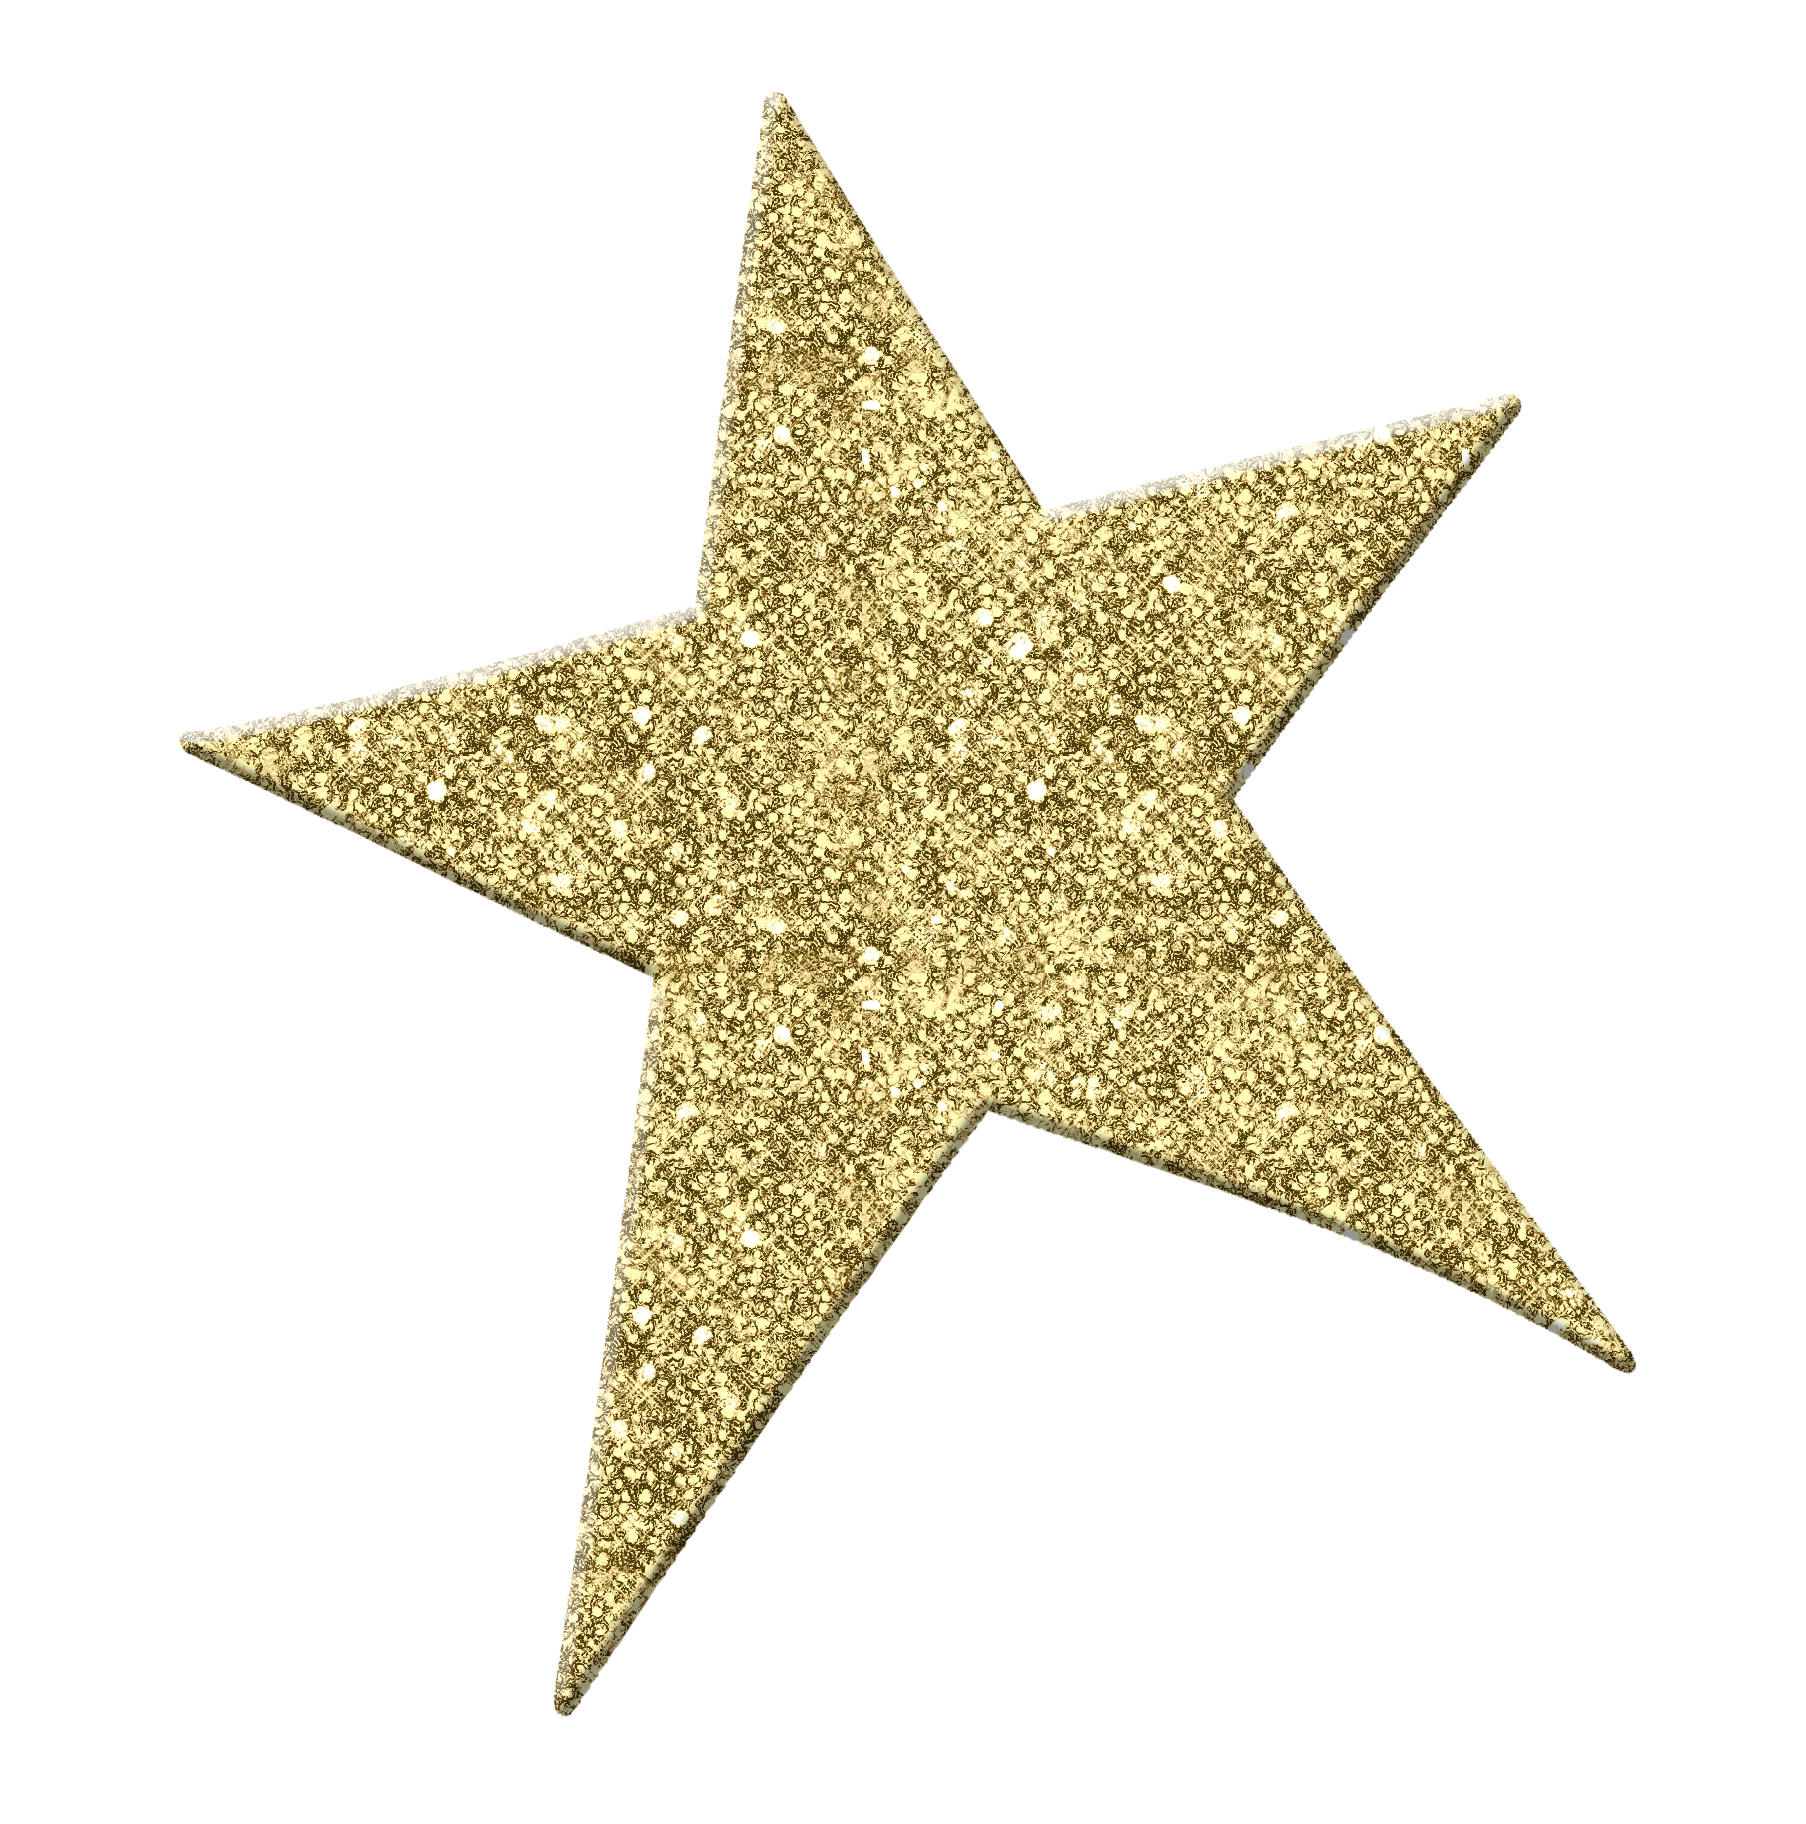 Smiley clipart gold star Pictures Gold star clipart Clipartix